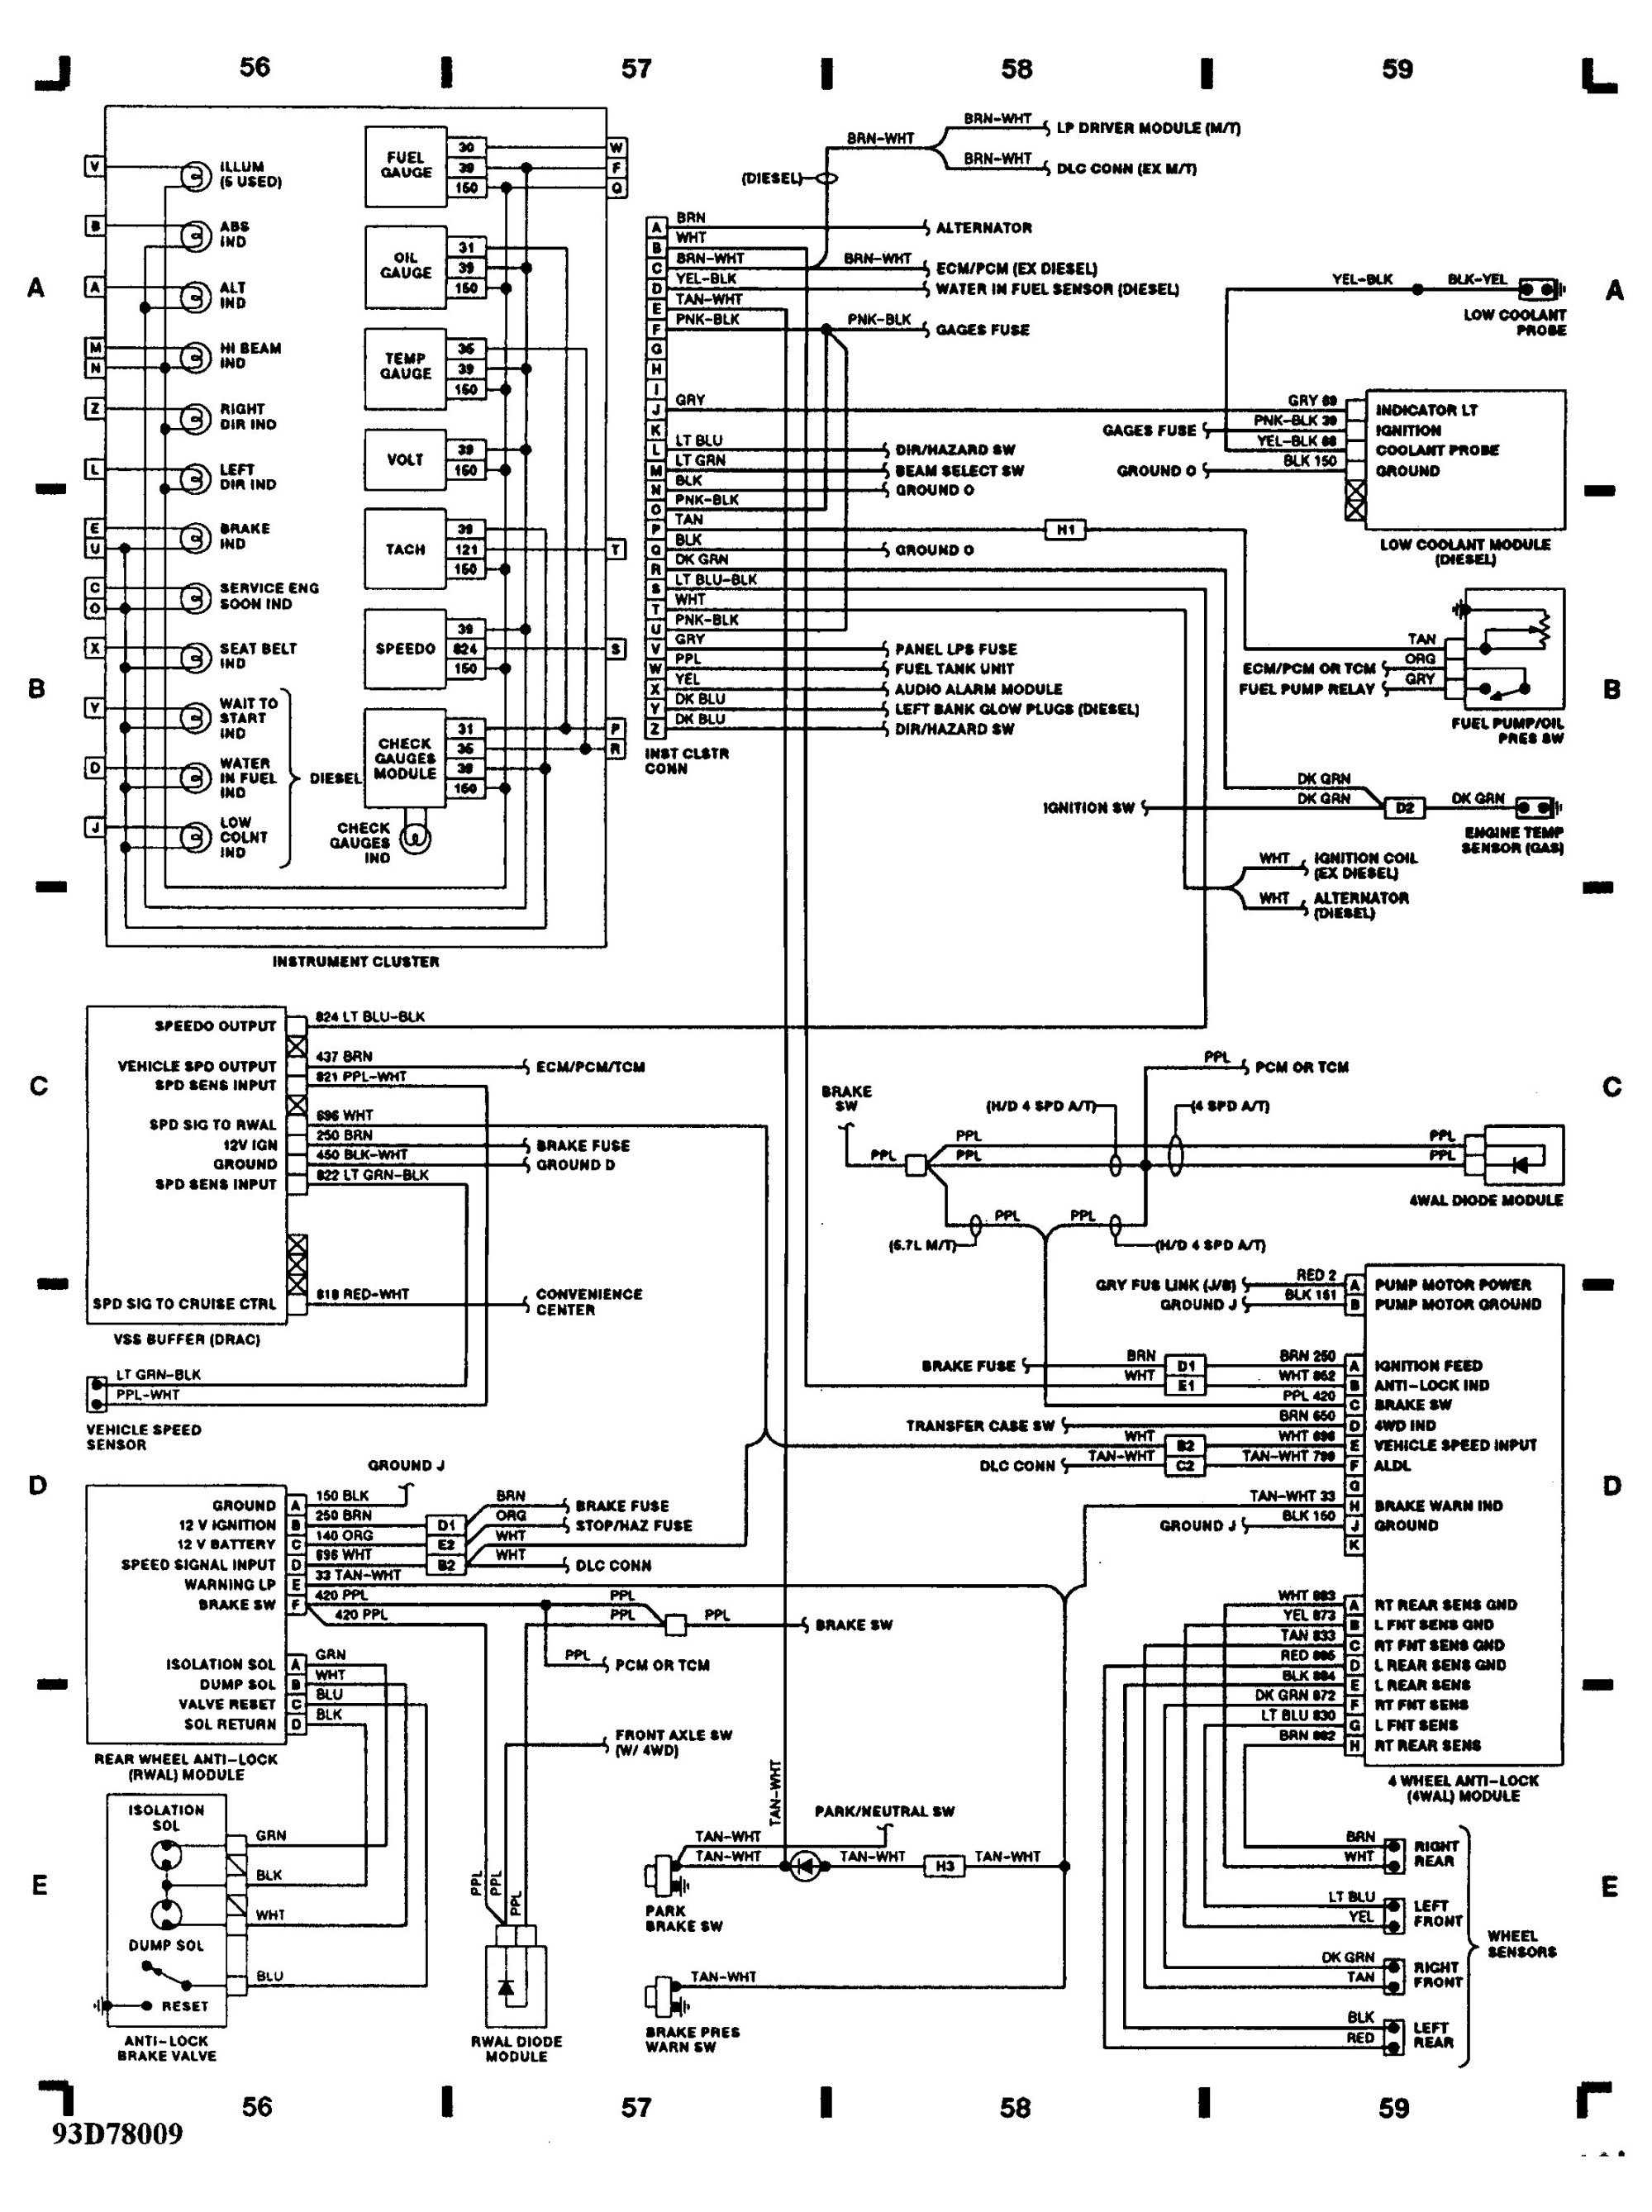 hight resolution of chevy ls wiring diagram wiring diagram user 2002 chevy impala ls radio wiring diagram chevy ls wiring diagram